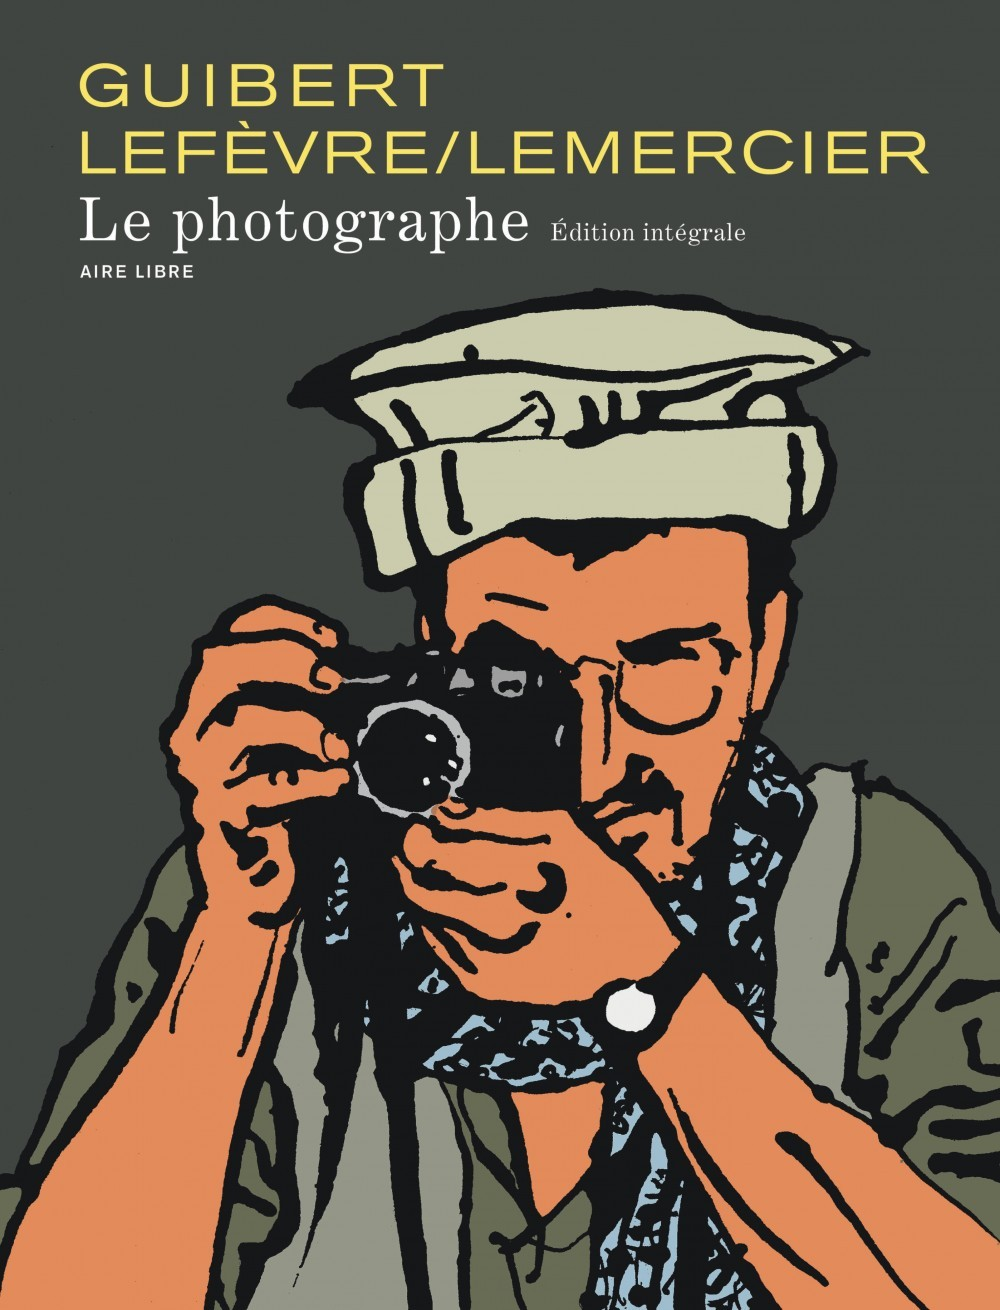 PHOTOGRAPHE (INTEGRALE) - LE PHOTOGRAPHE - L'INTEGRALE - TOME 1 - LE PHOTOGRAPHE NOUVELLE INTEGRALE